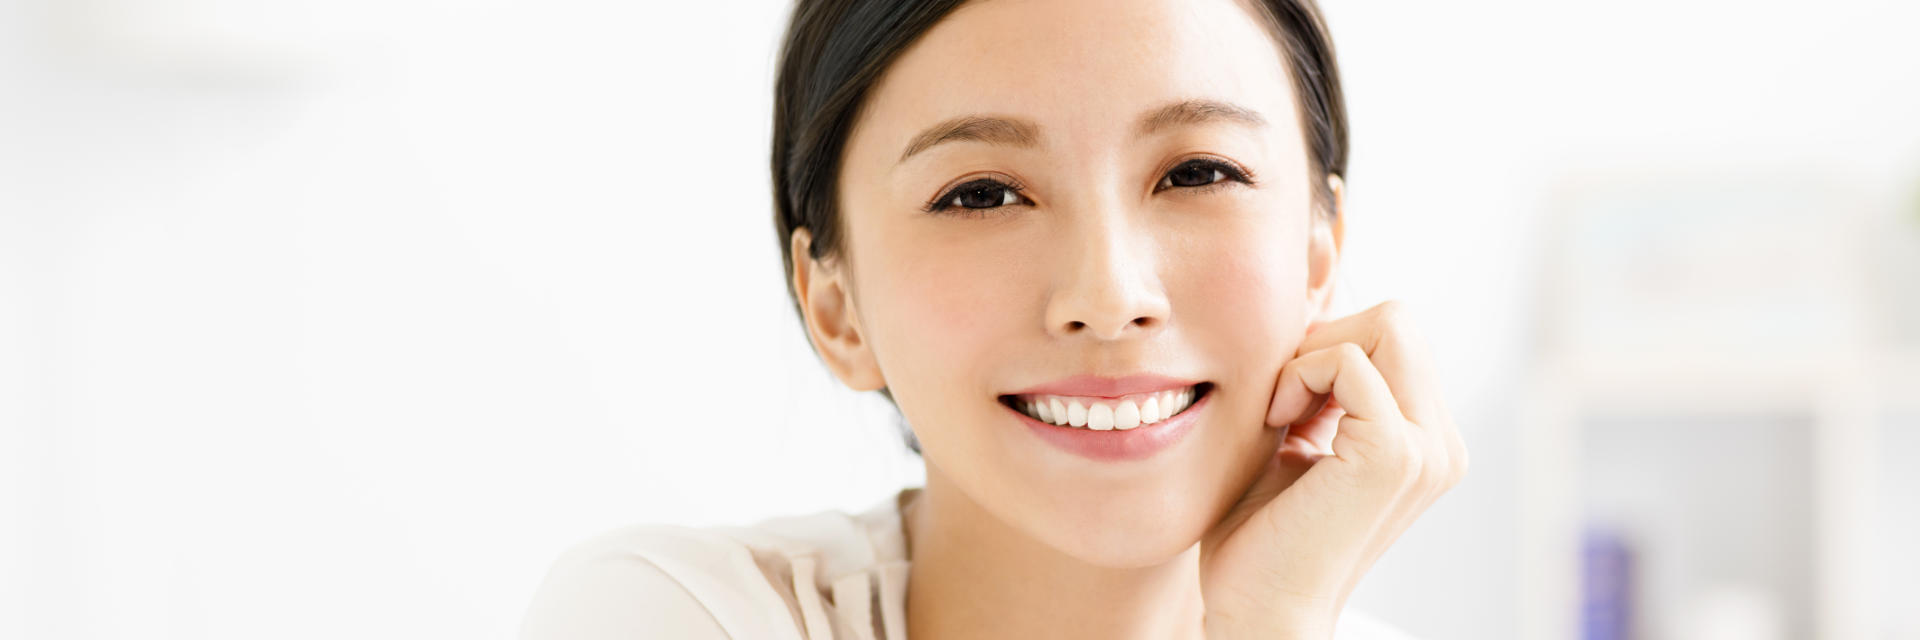 Cheerful young Asian woman showing nice whitened teeth in her teeth.